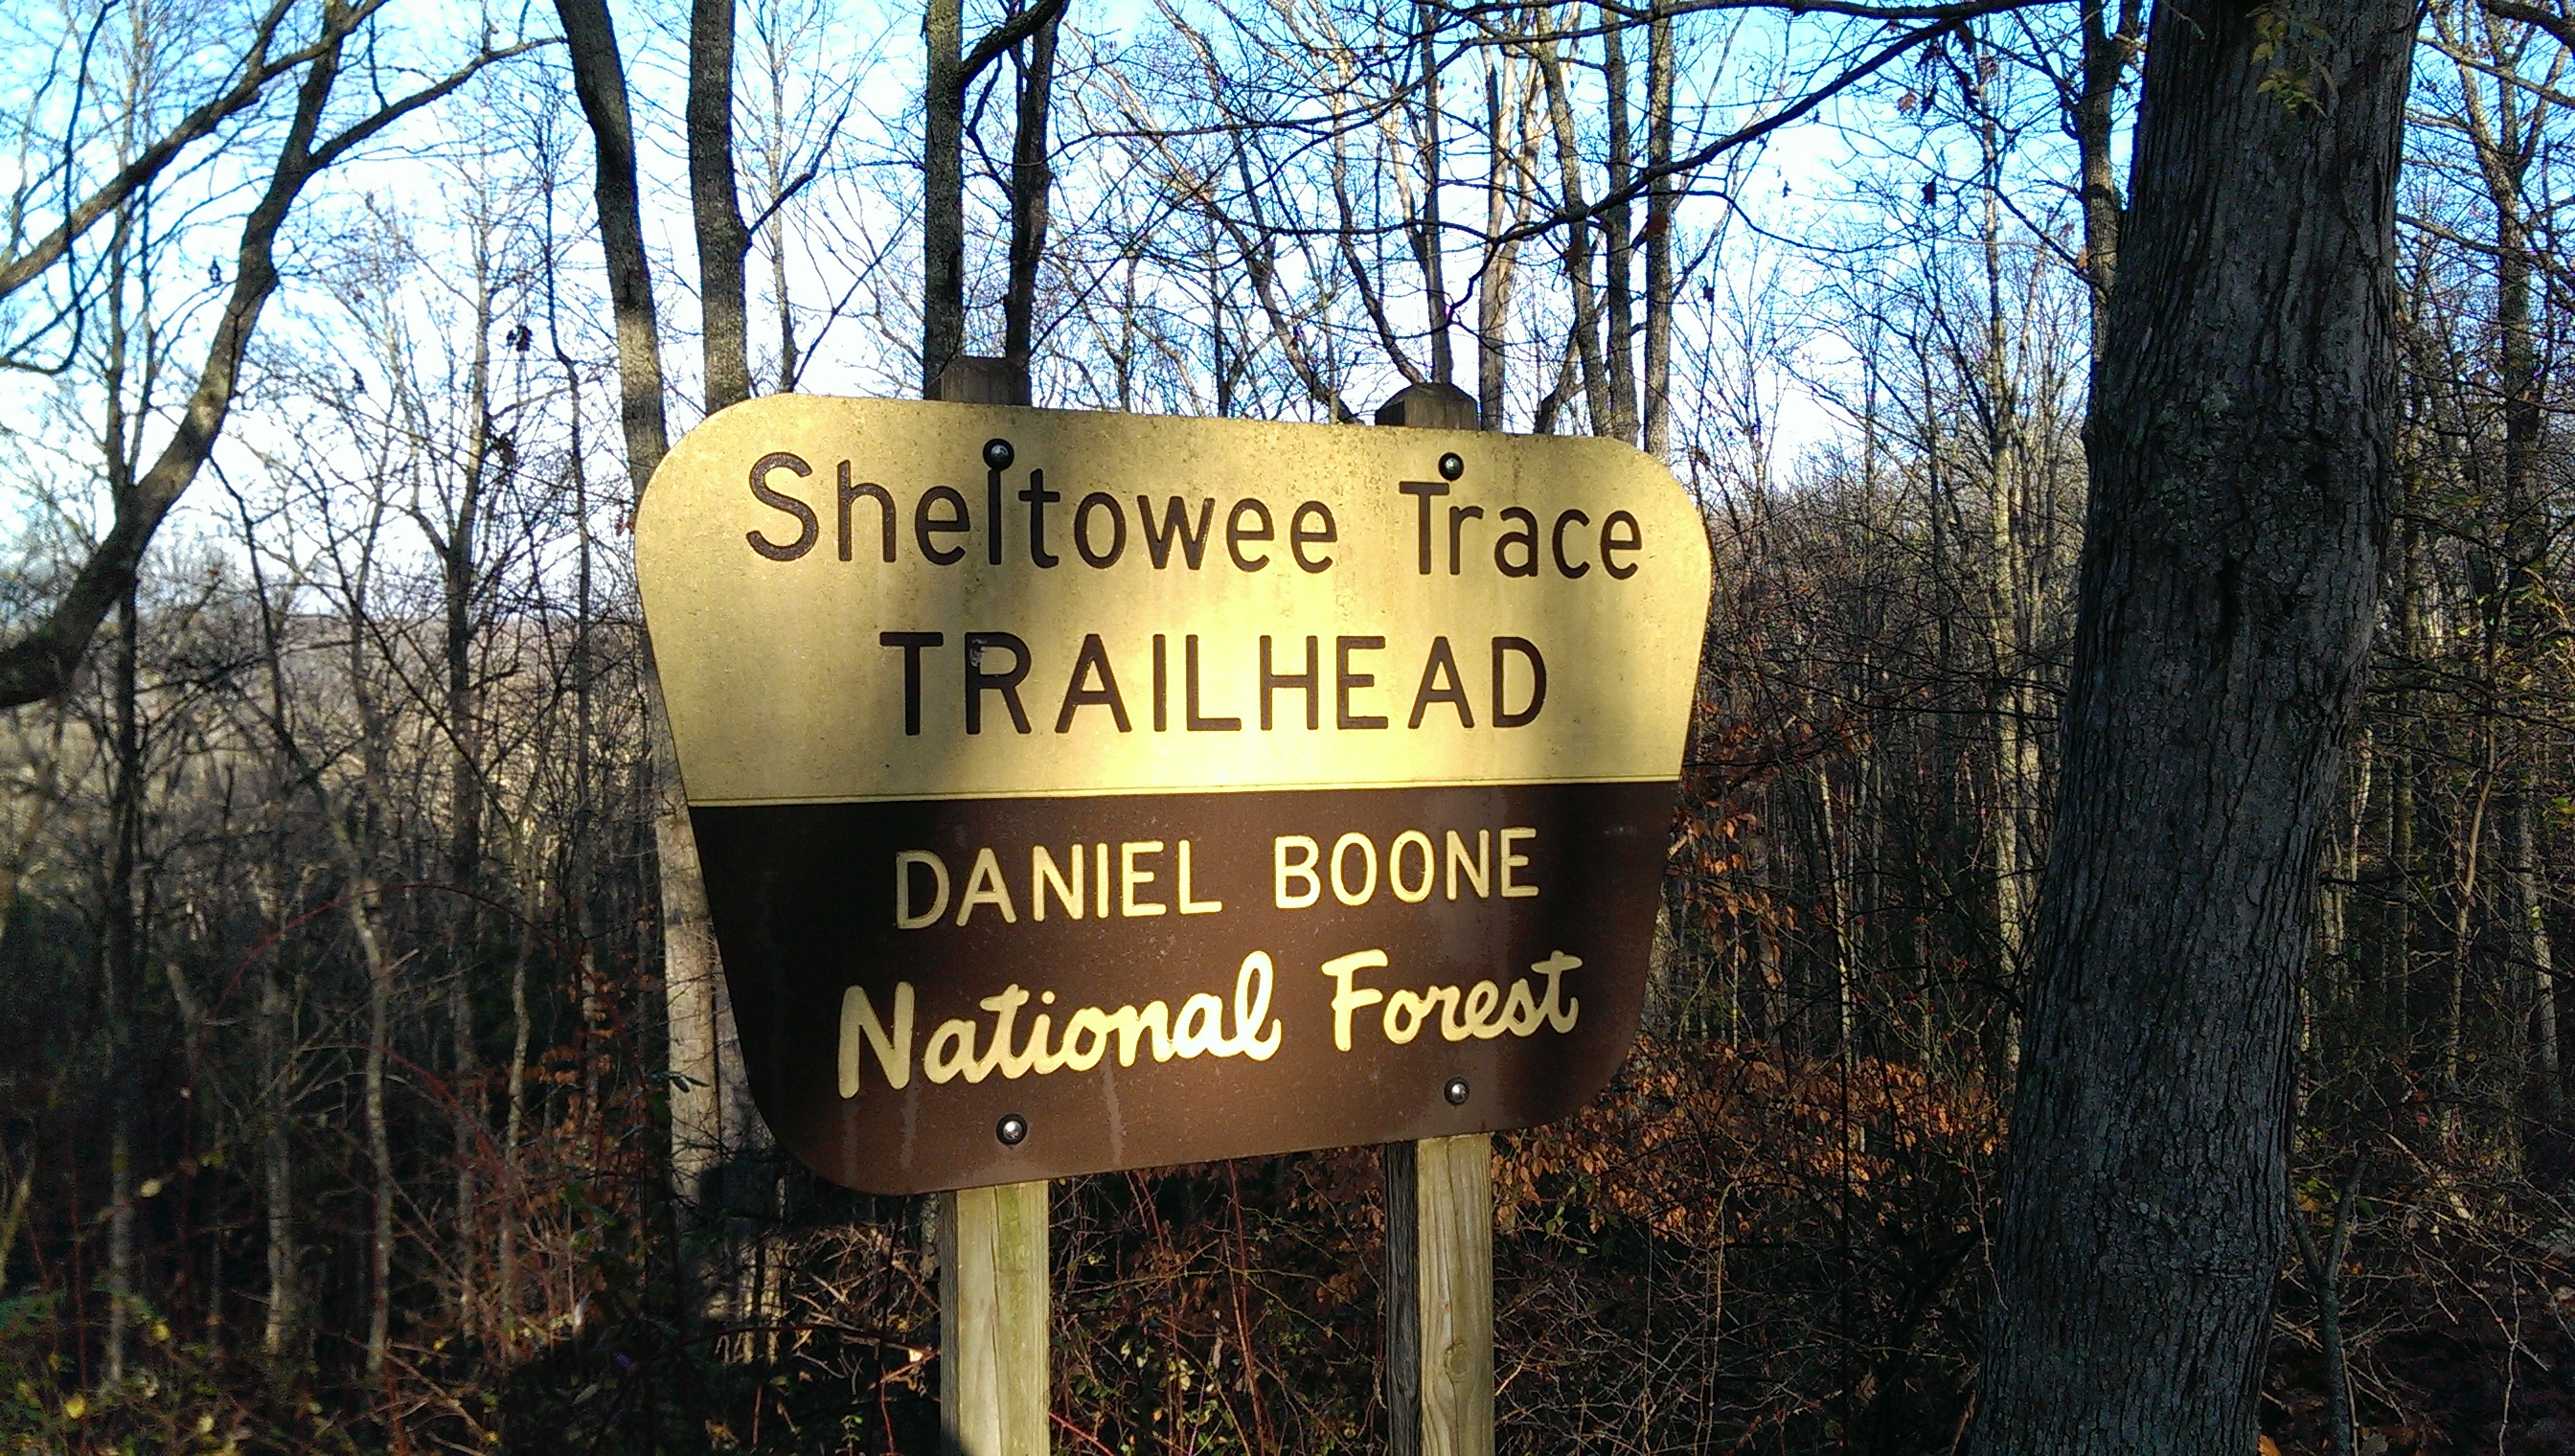 Sheltowee Trace Trail